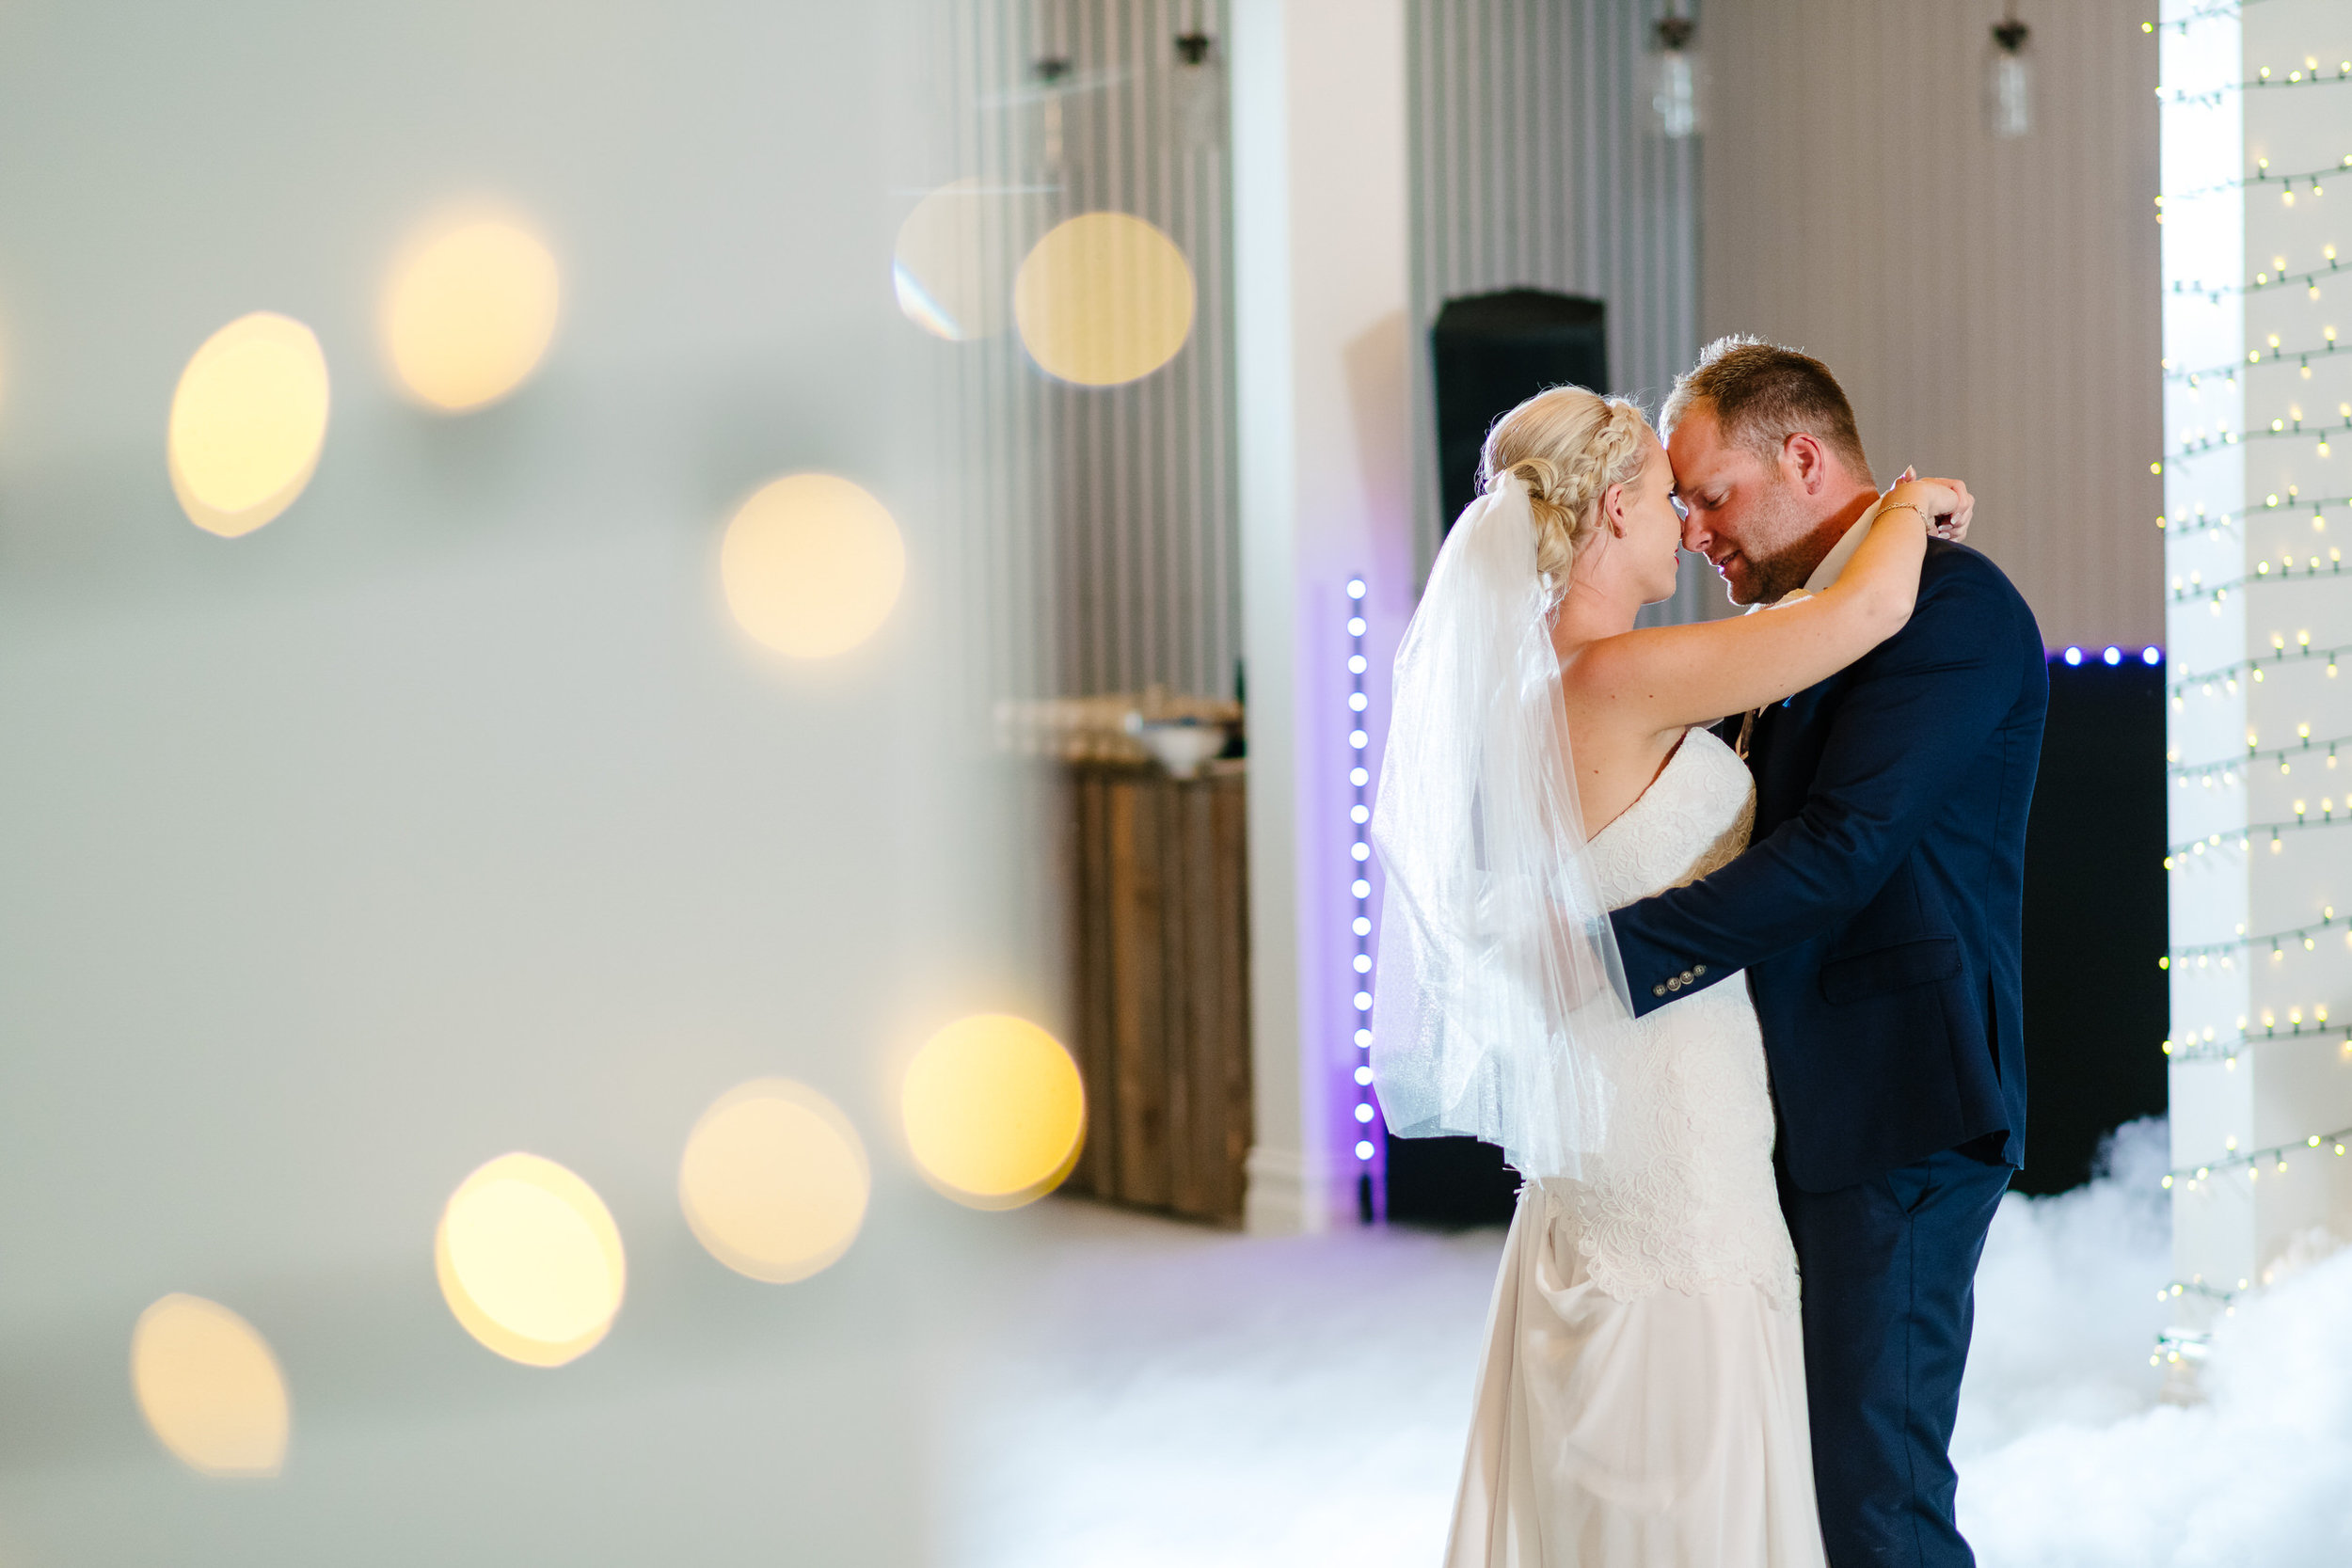 Justin_And_Jim_Photography_Byrchendale_Barn_Wedding85.JPG